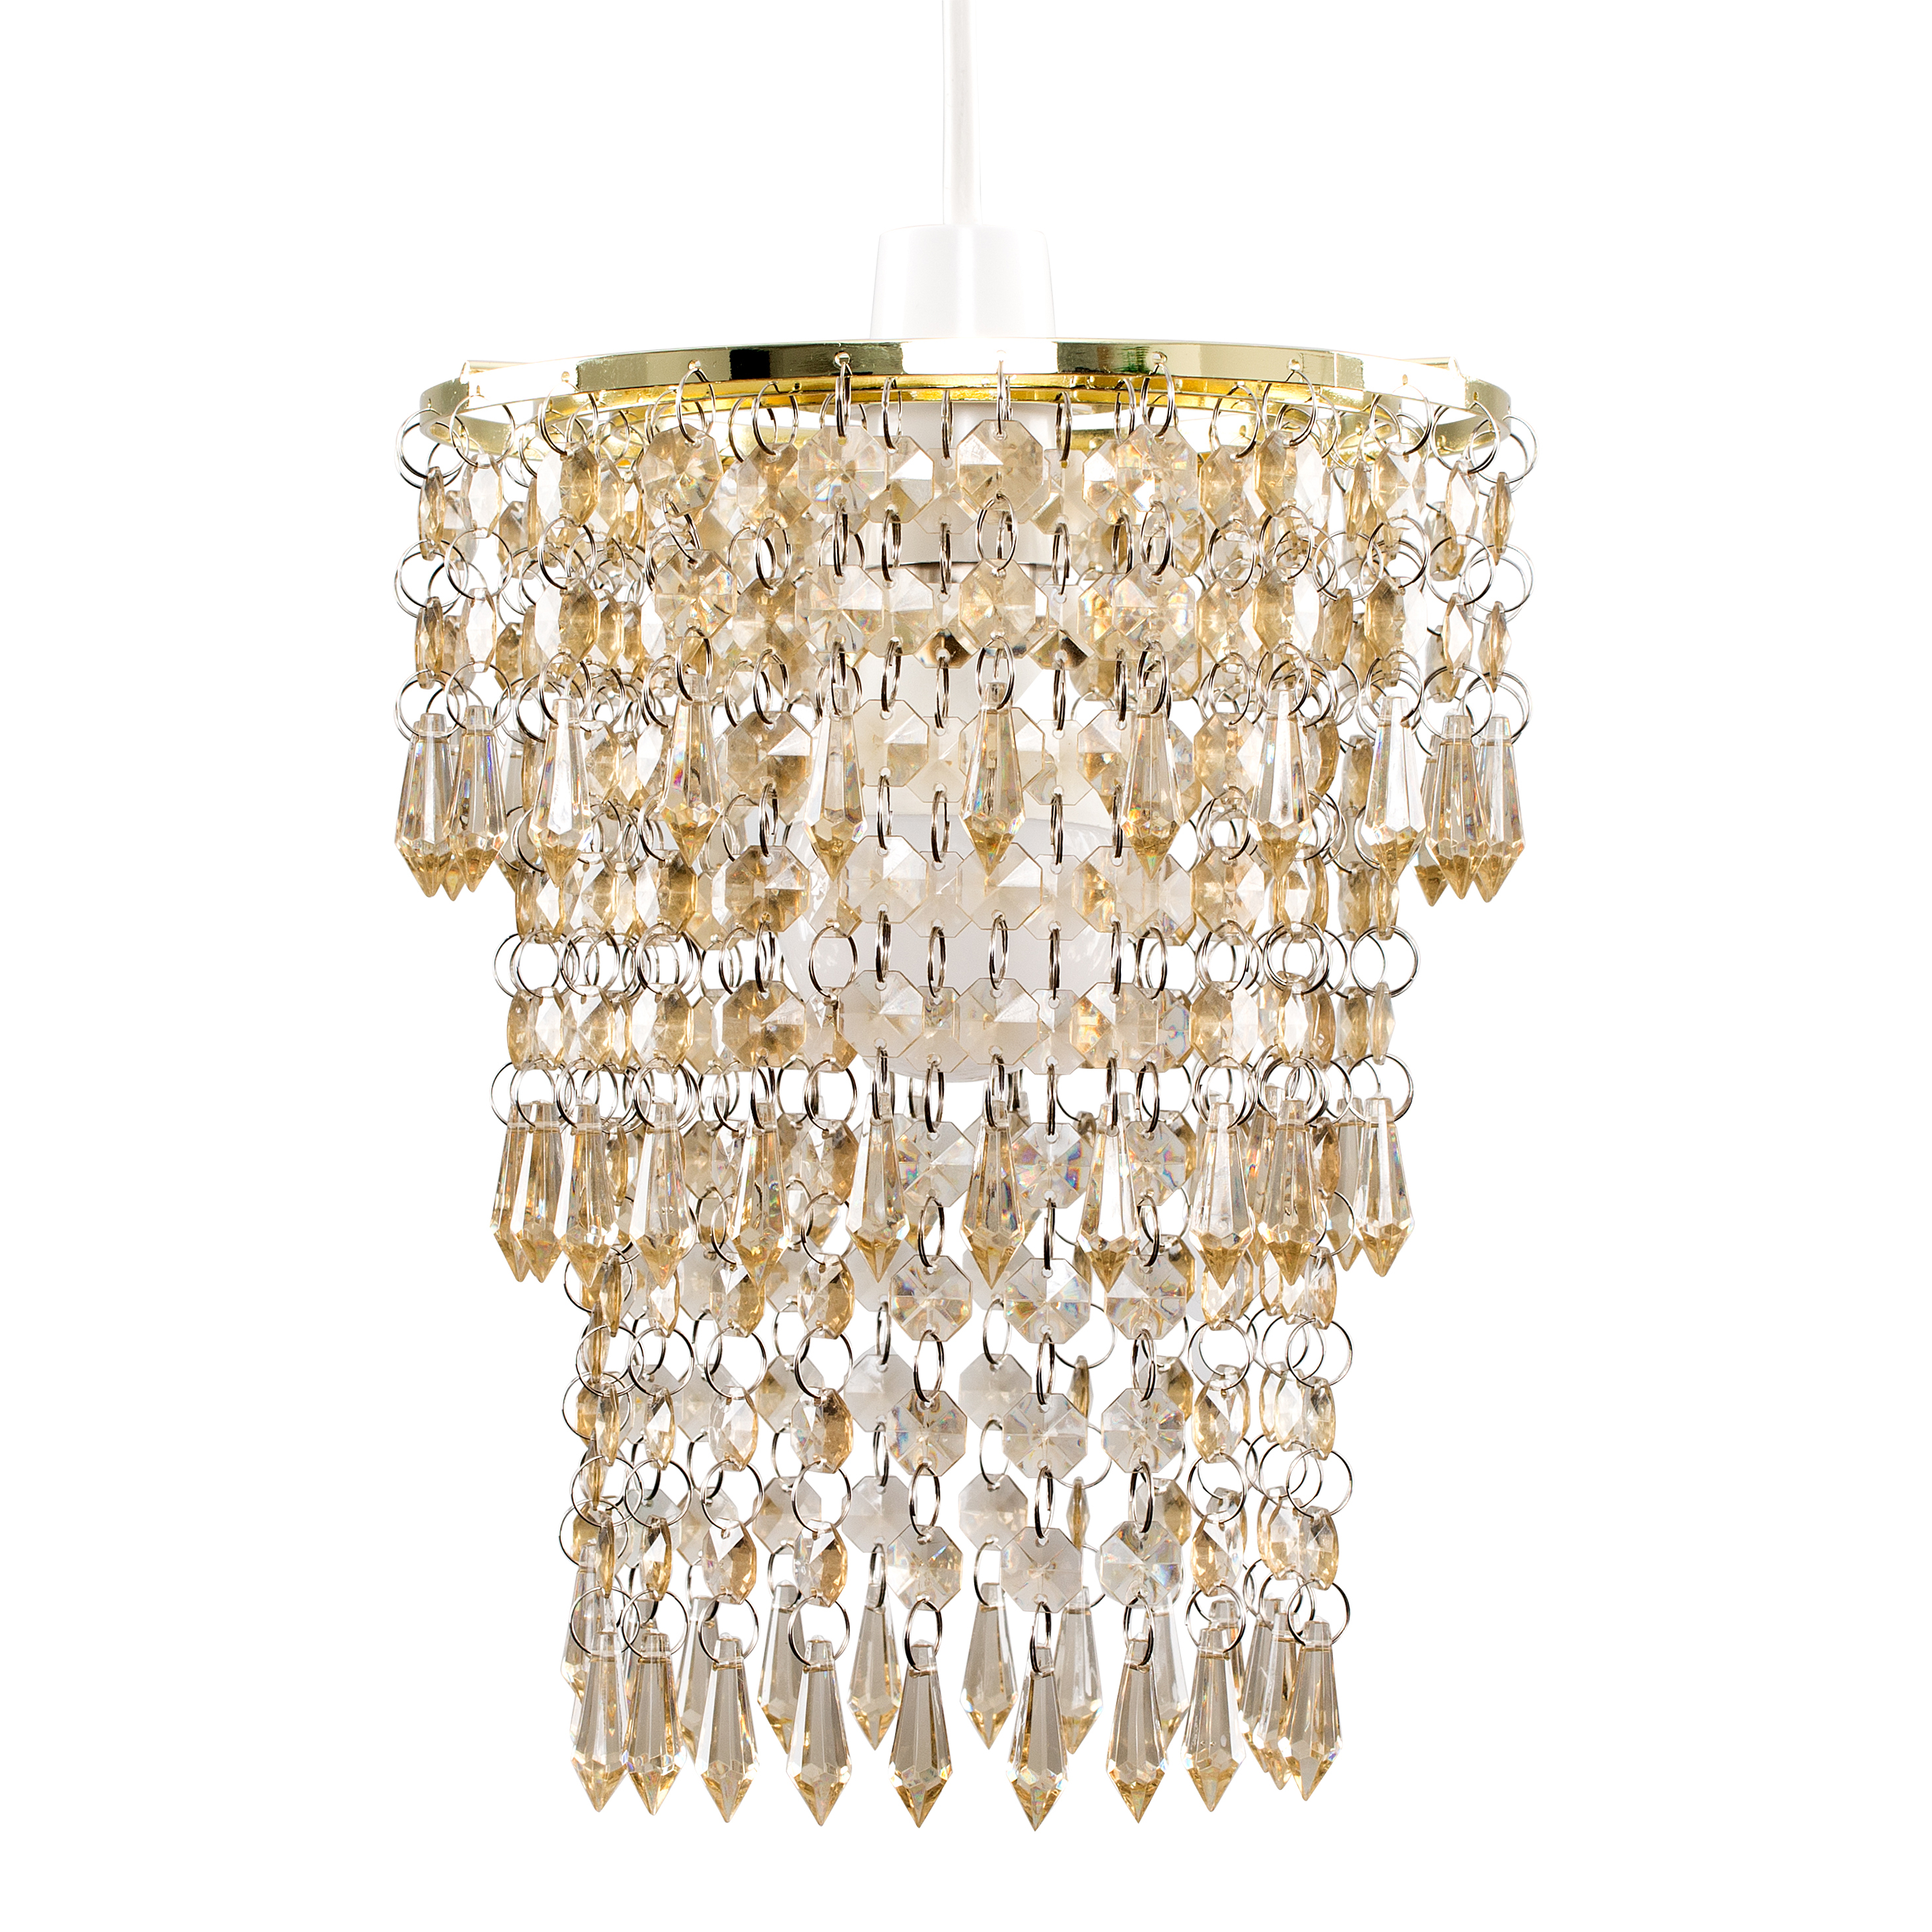 3 Tier Acrylic Droplet Pendant in Gold and Champagne